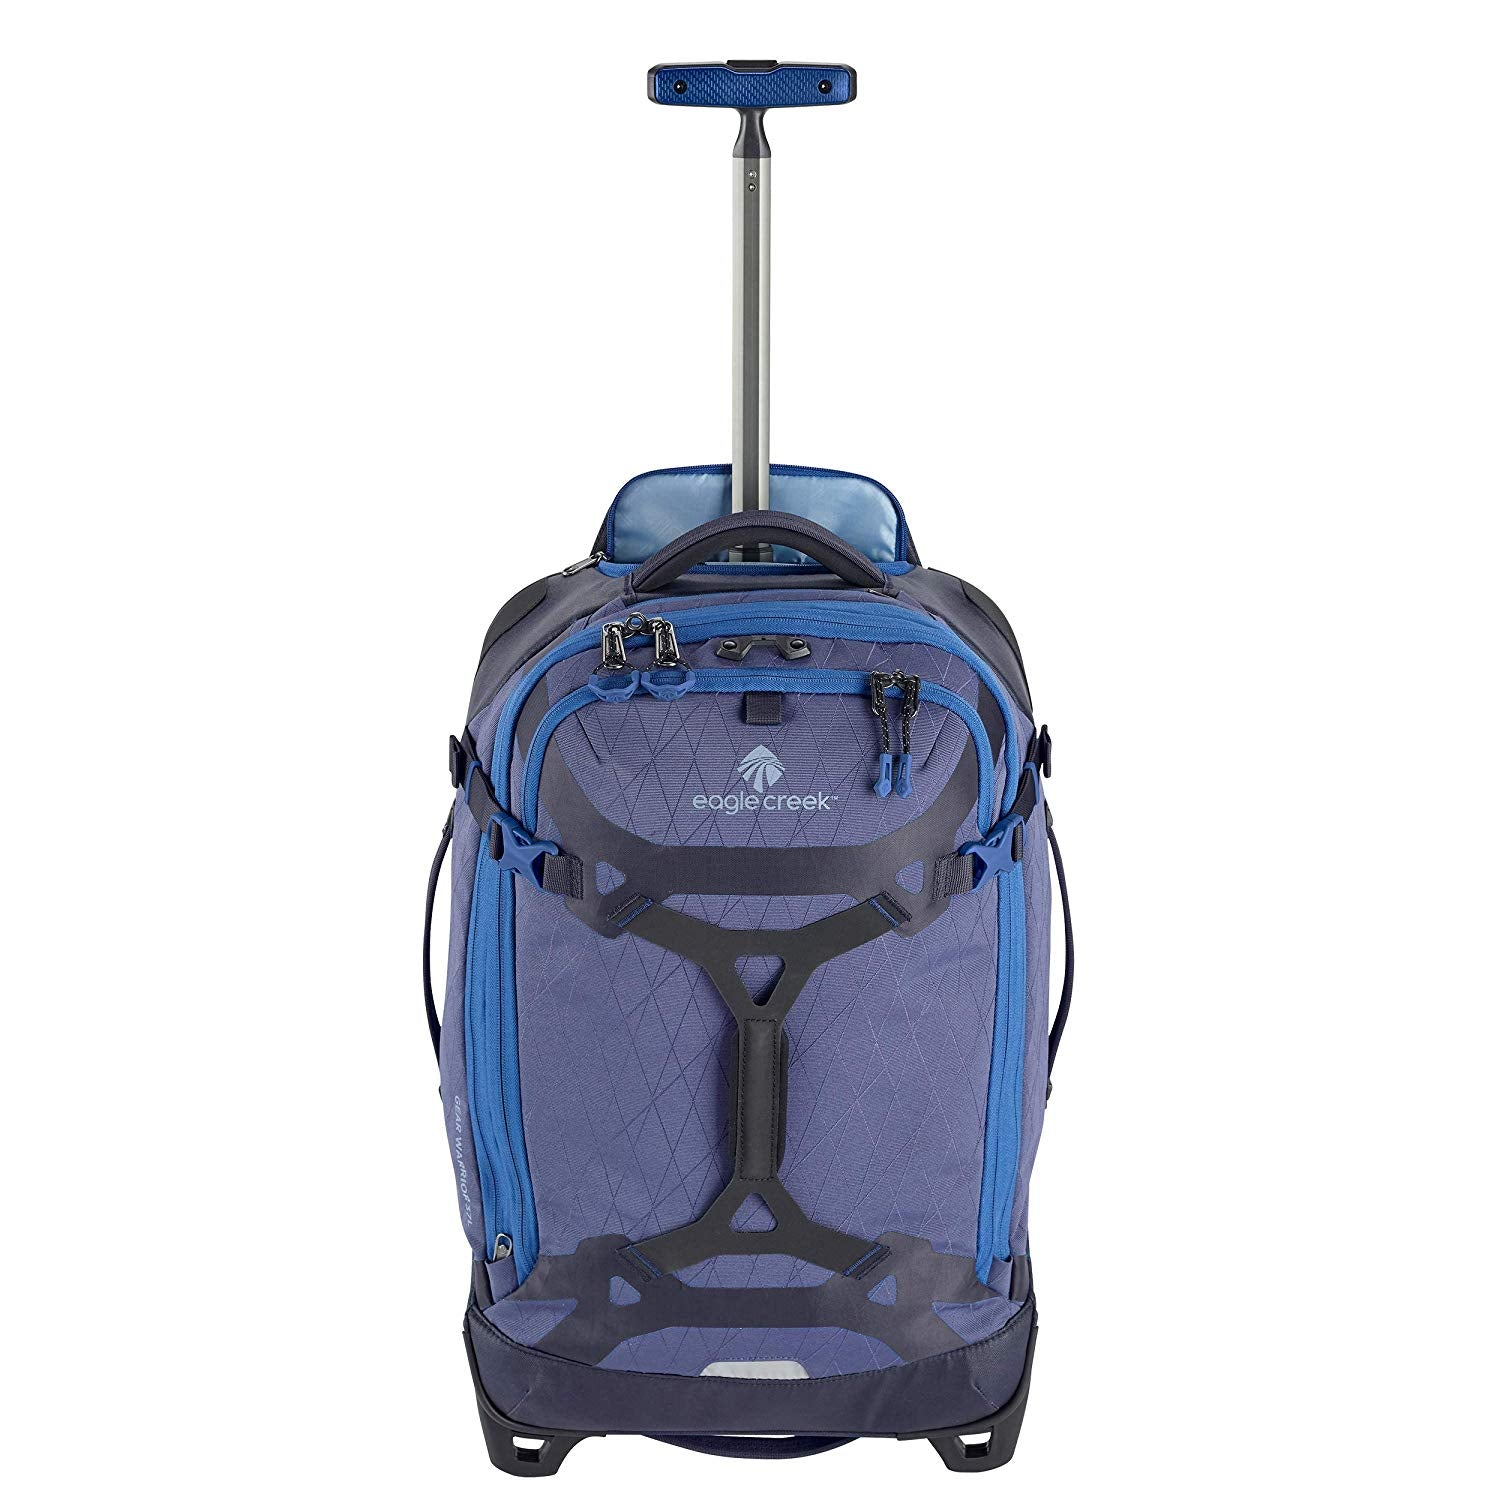 Eagle Creek Gear Warrior International Carry-On 2-Wheeled